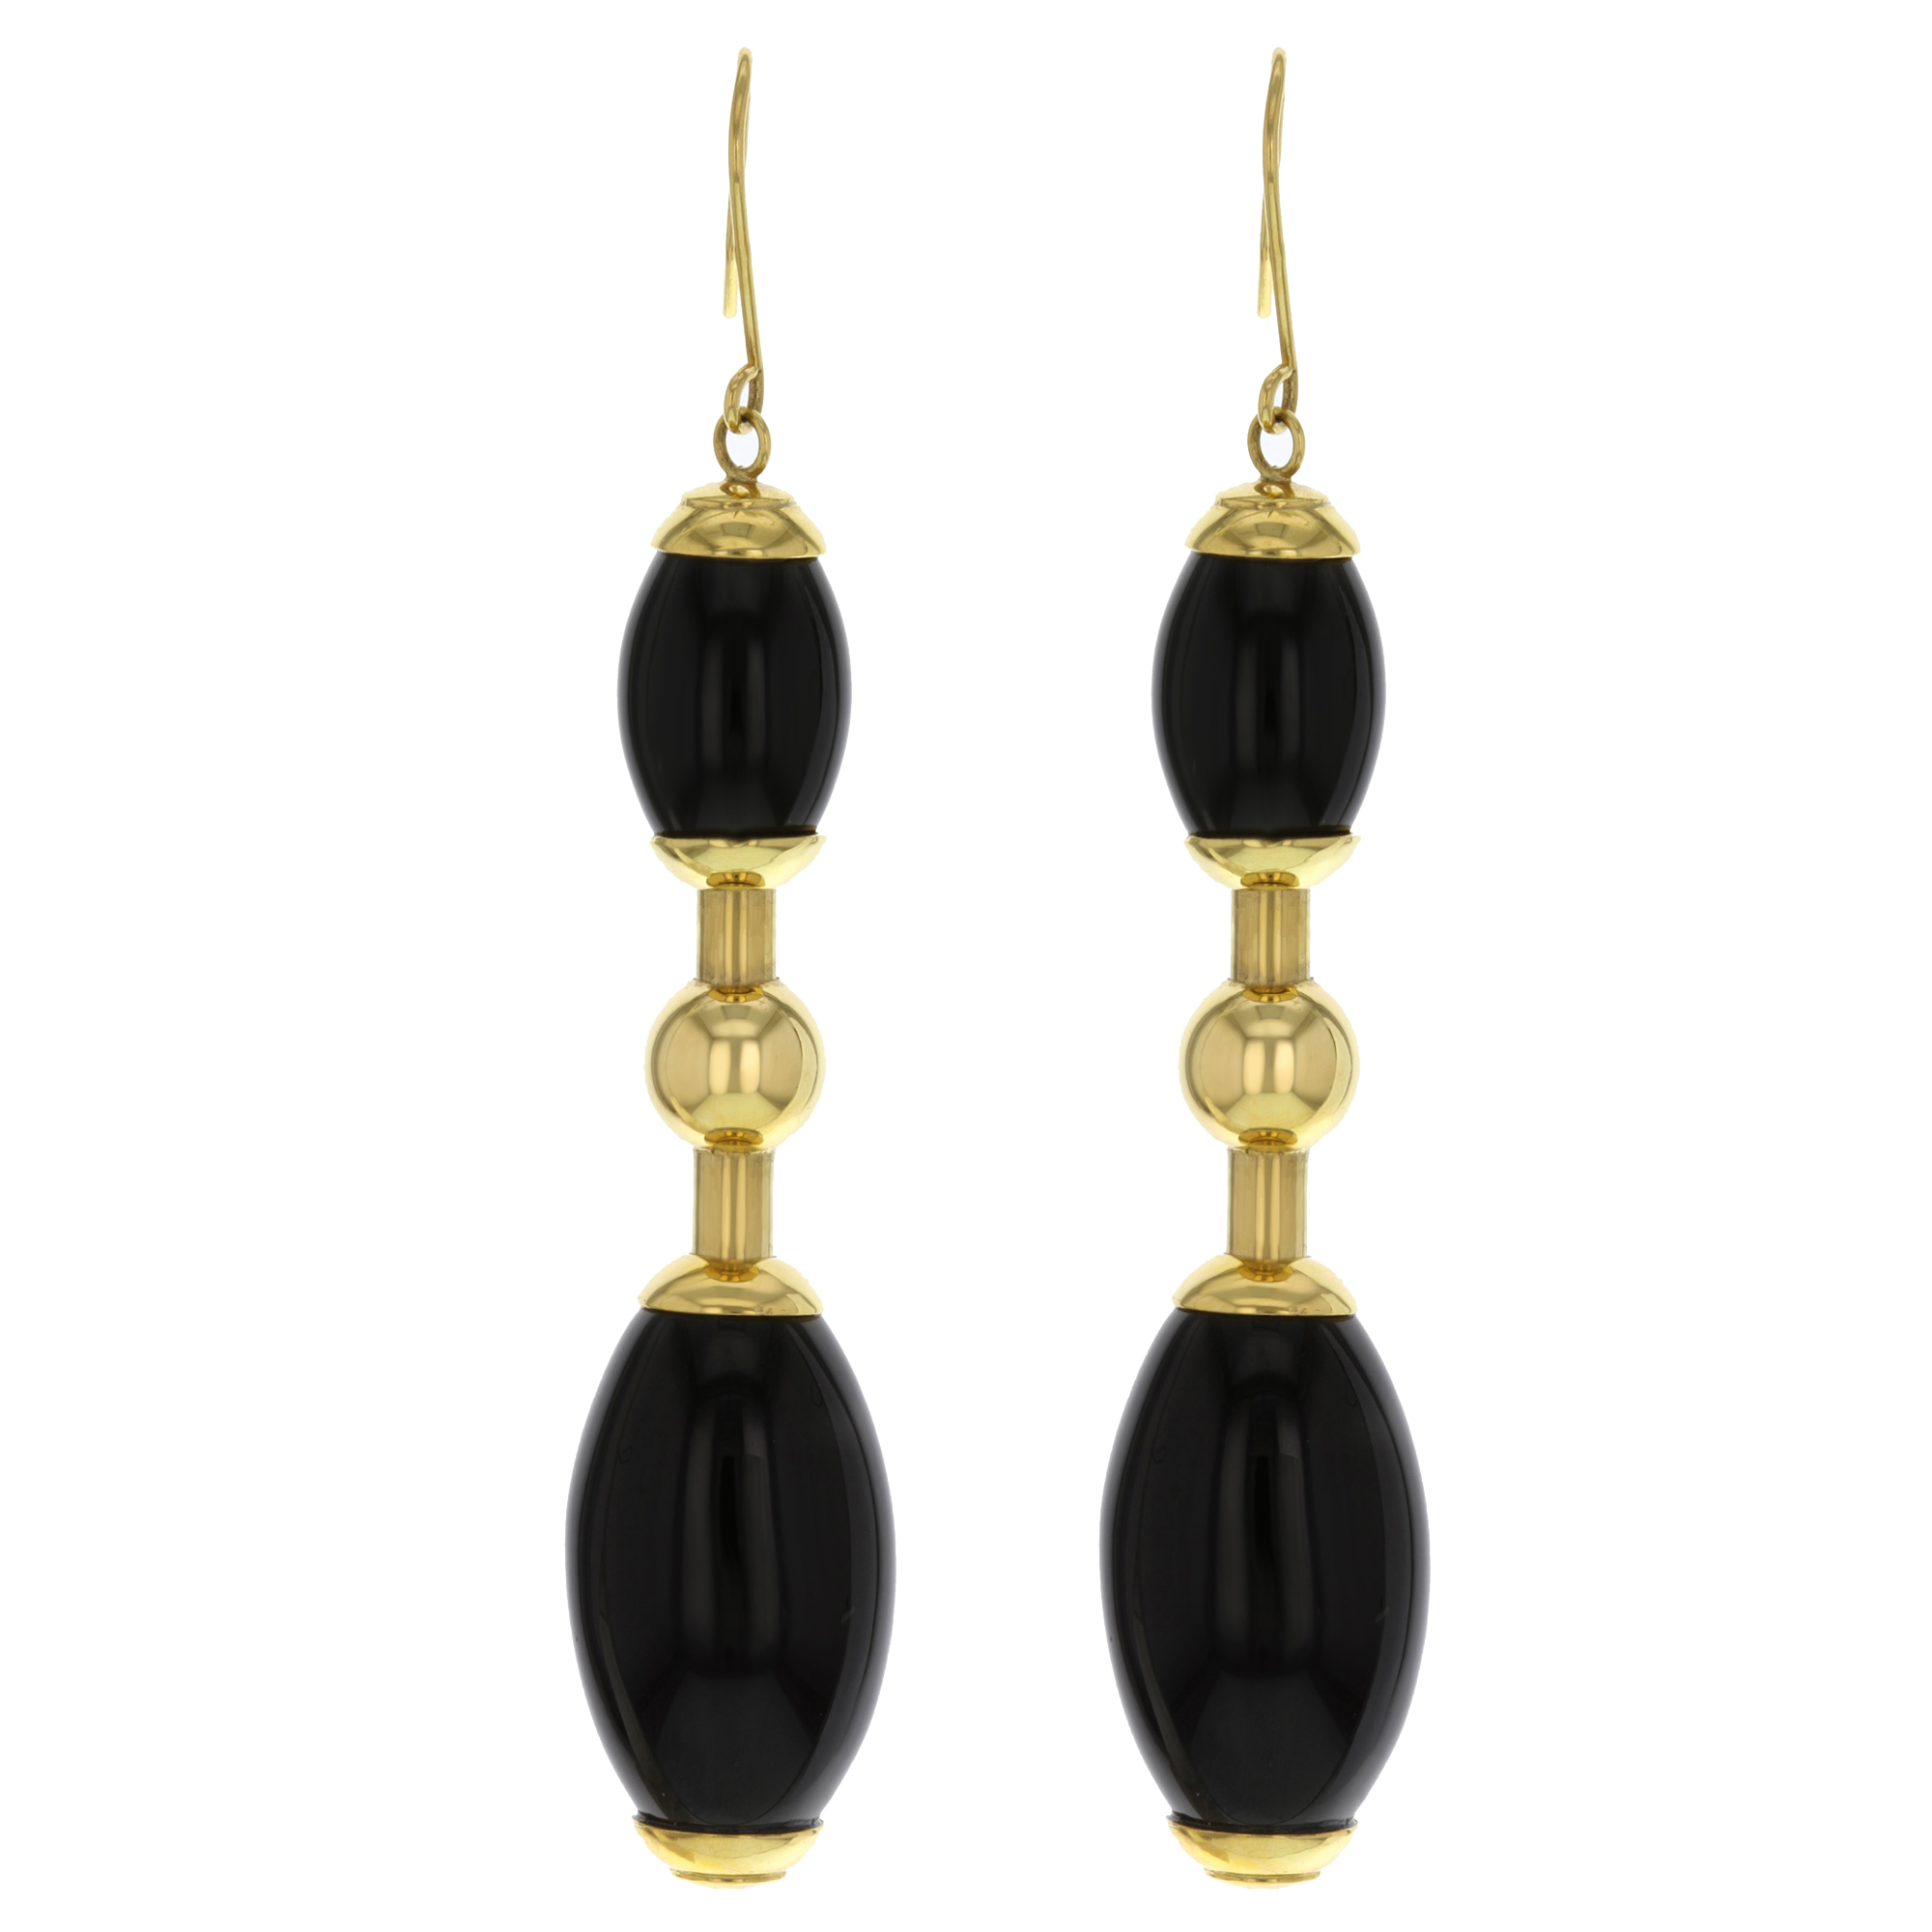 "Image of ""Faraone Mennella Tuca Tuca 18K Yellow Gold & Black Onyx Earrings"""